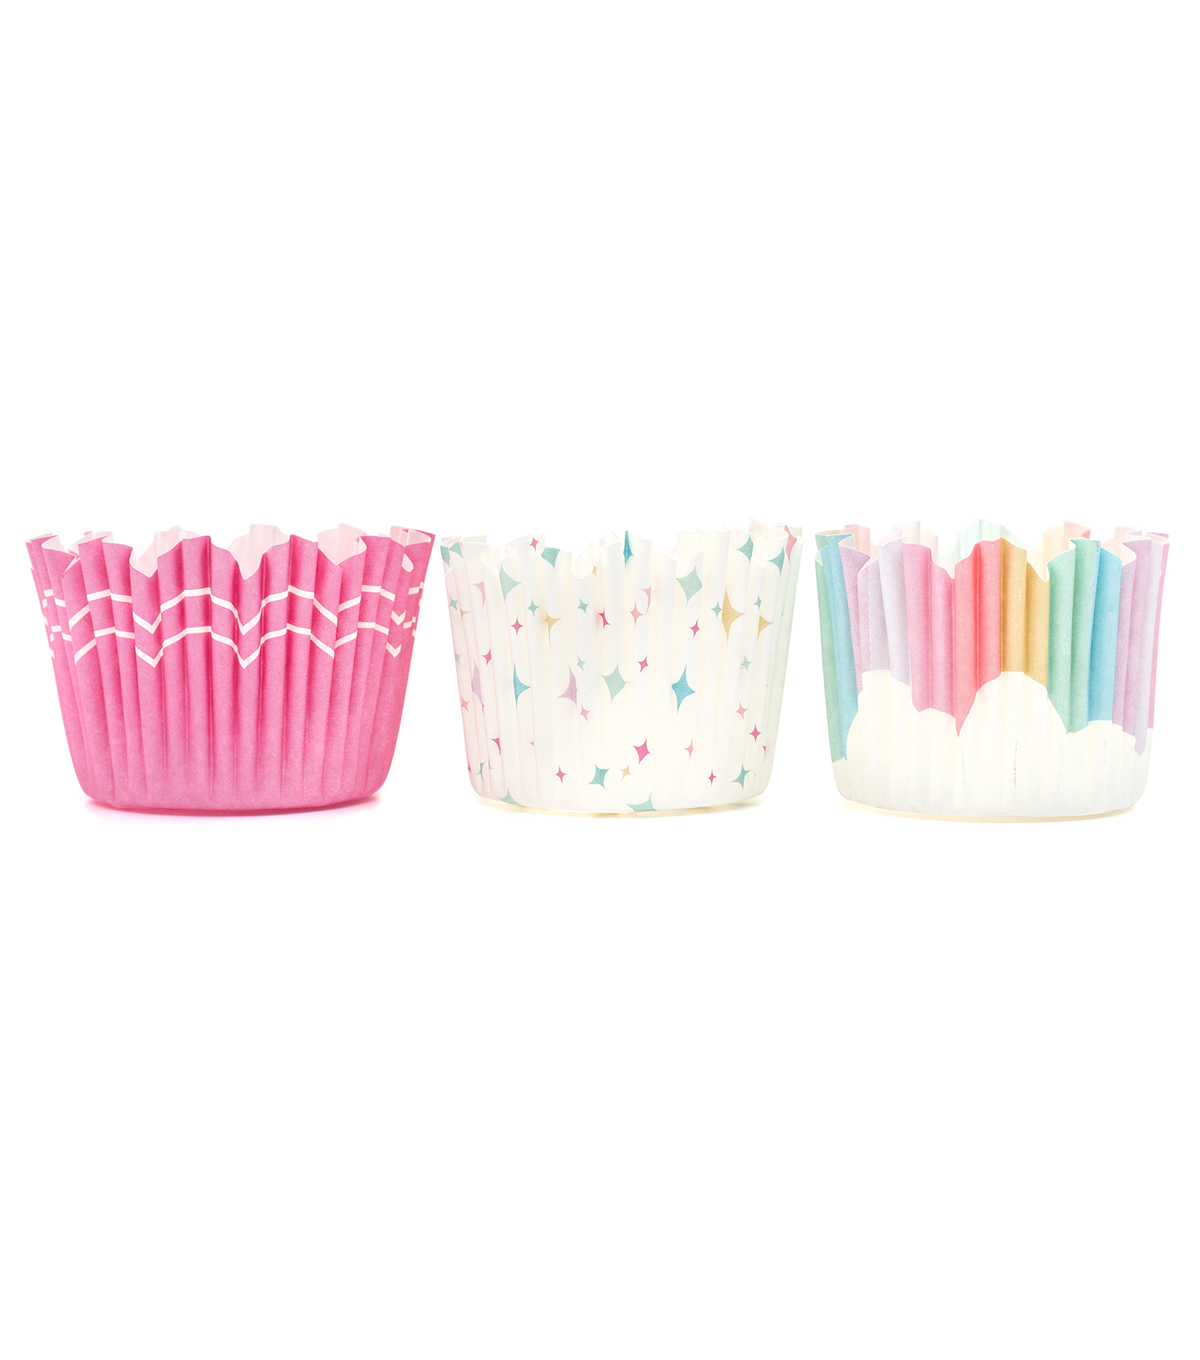 The Sweet Tooth Fairy Unicorn Party 36 pk Baking Cups-Rainbow